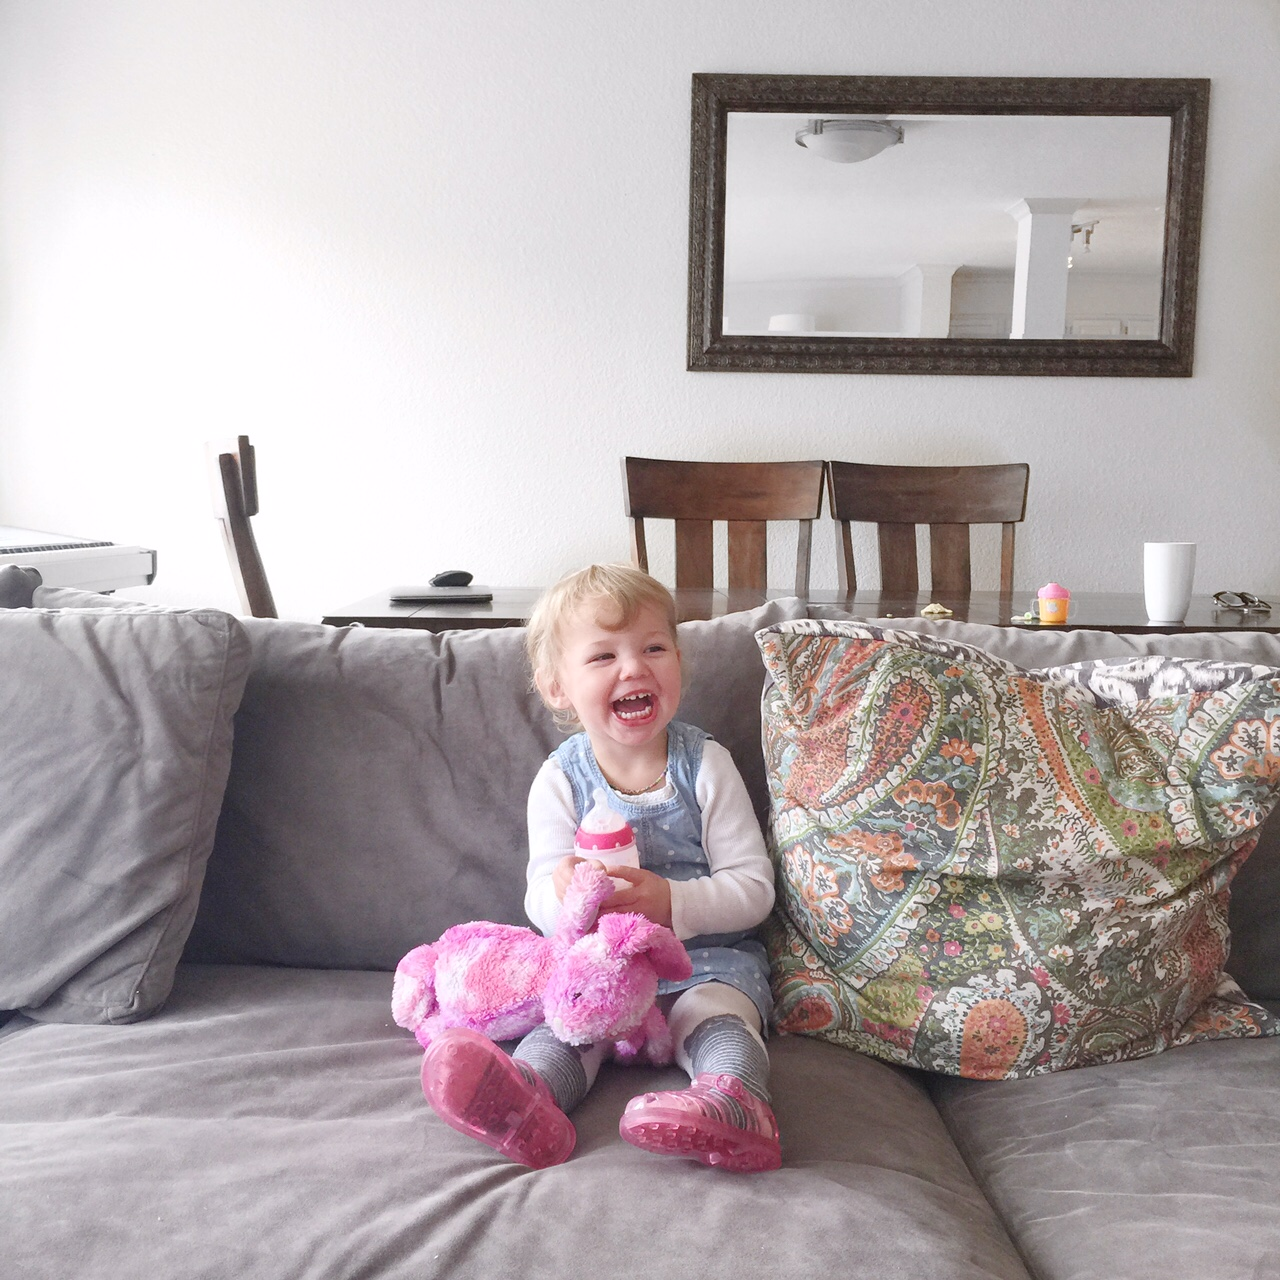 Happy baby on a couch